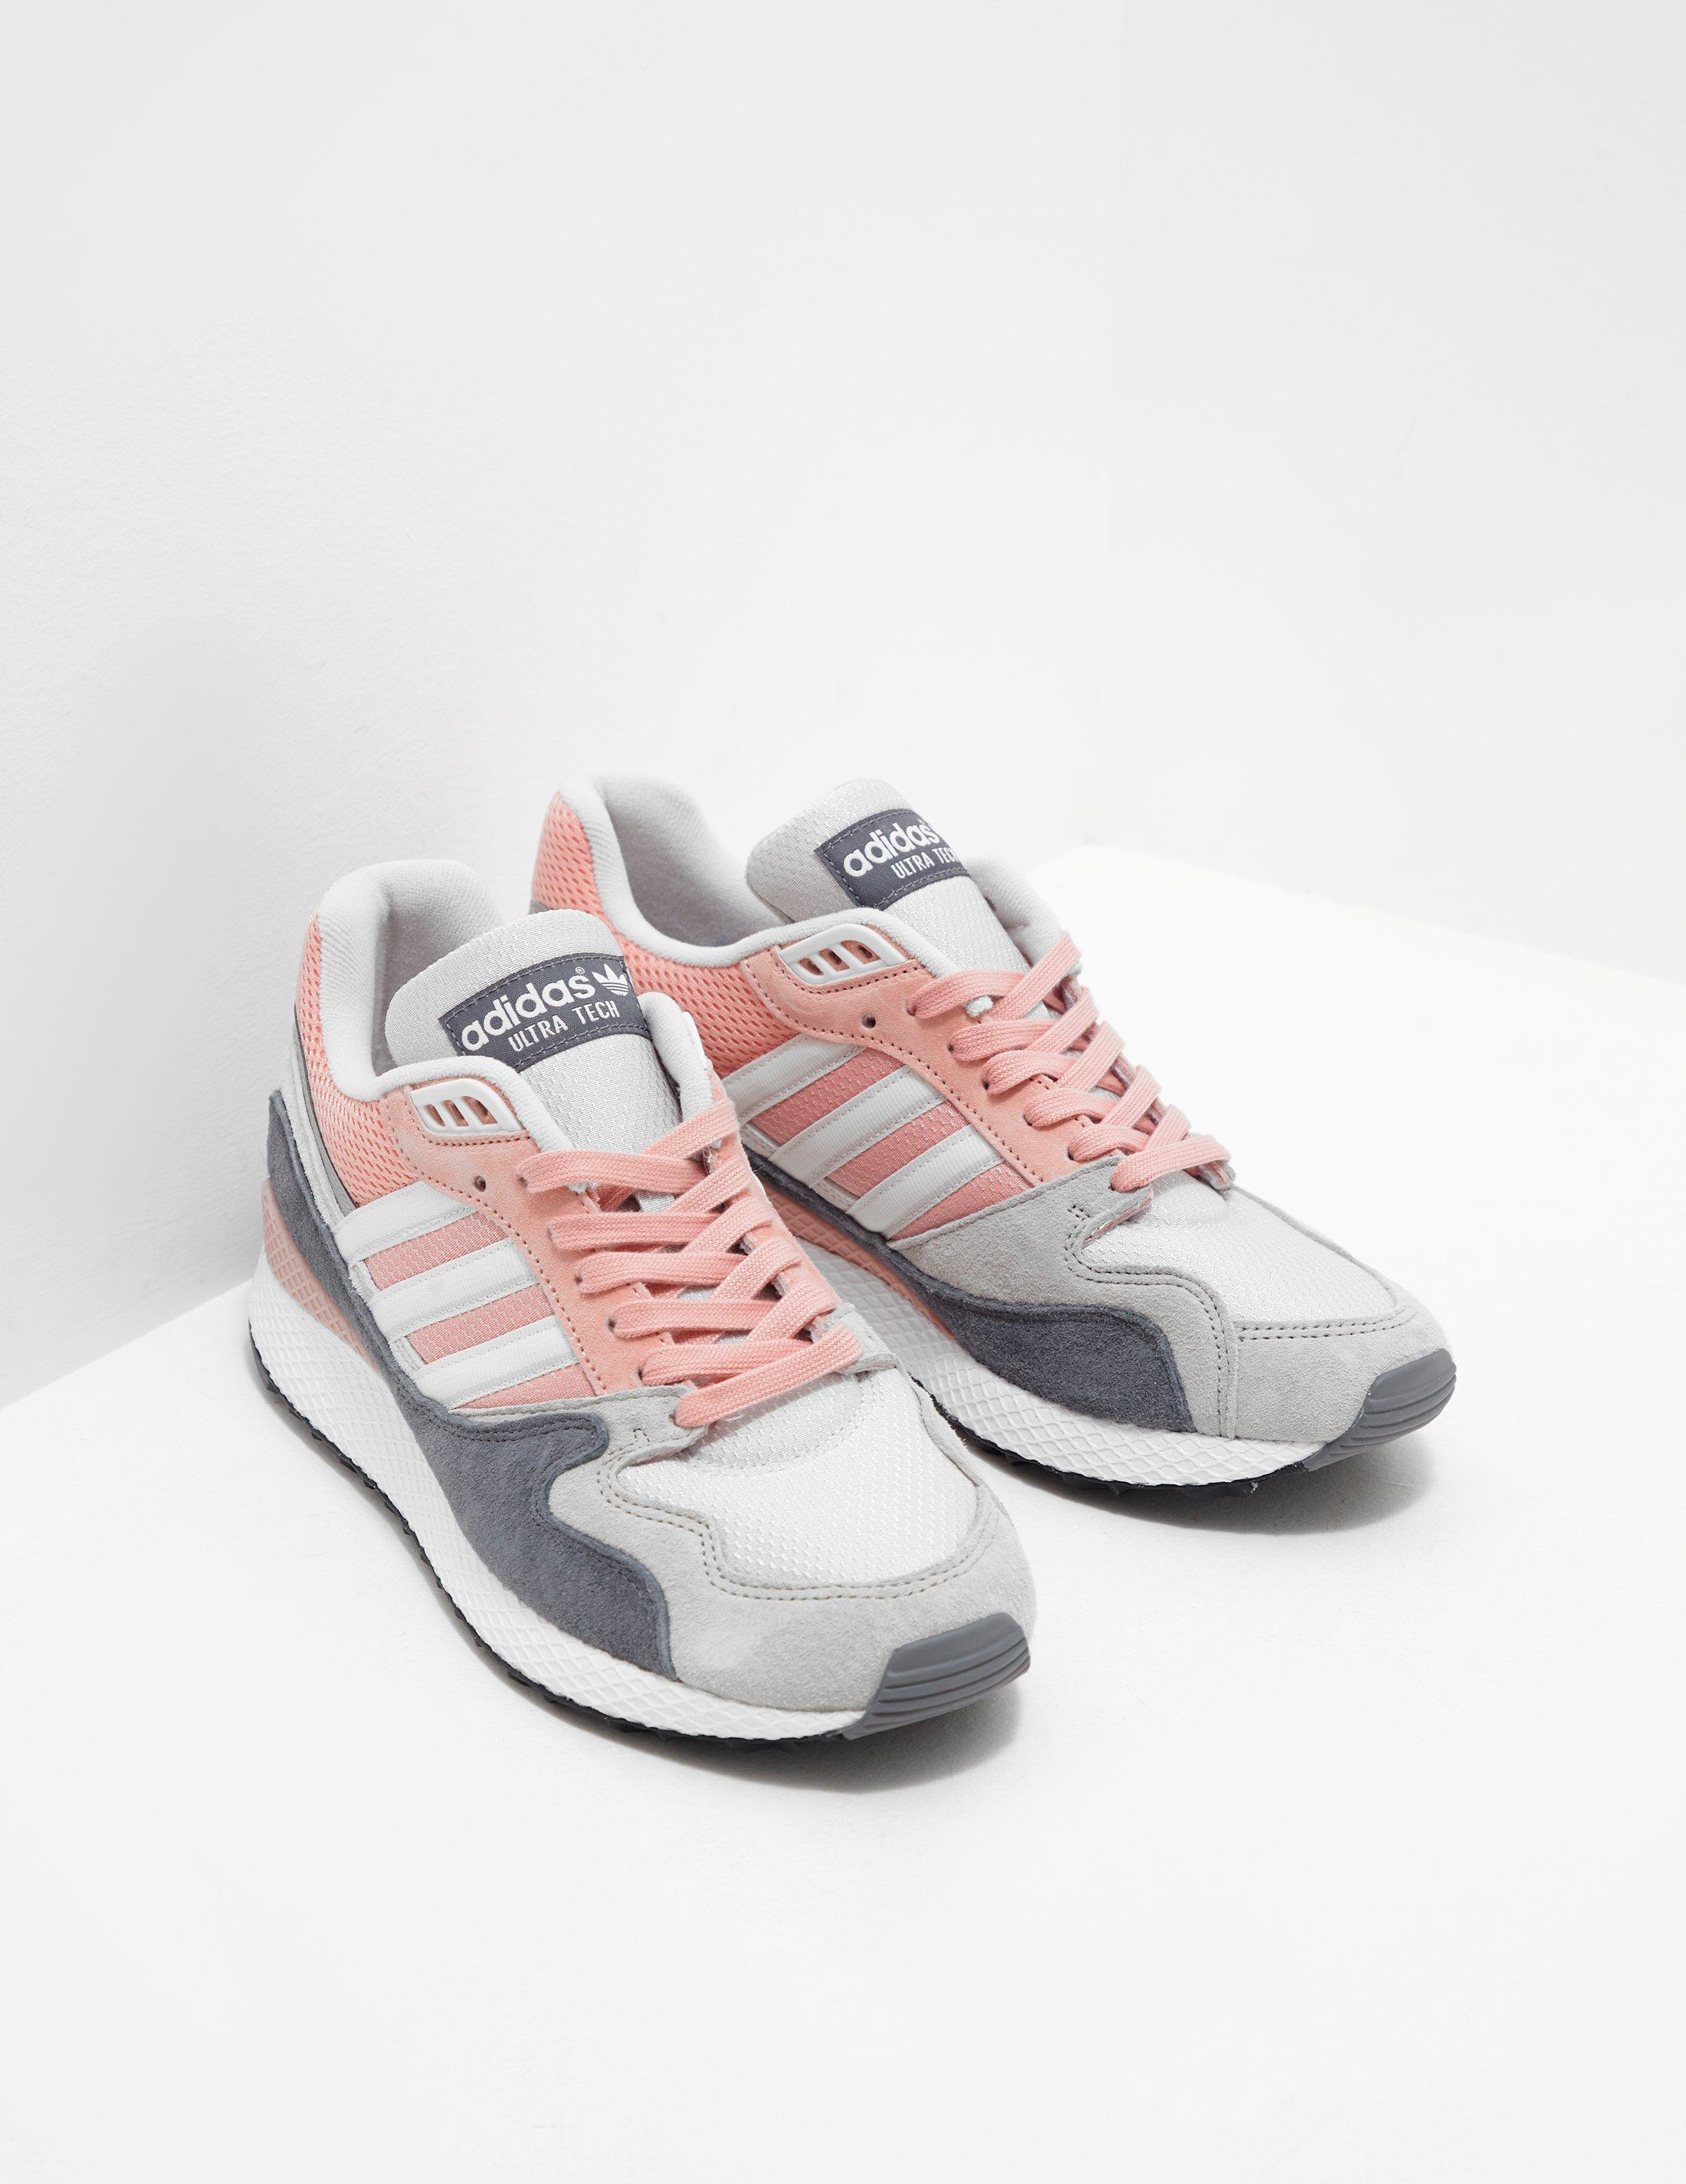 7cd8b3cd0630e Lyst - adidas Originals Ultra Tech Pink in Pink for Men